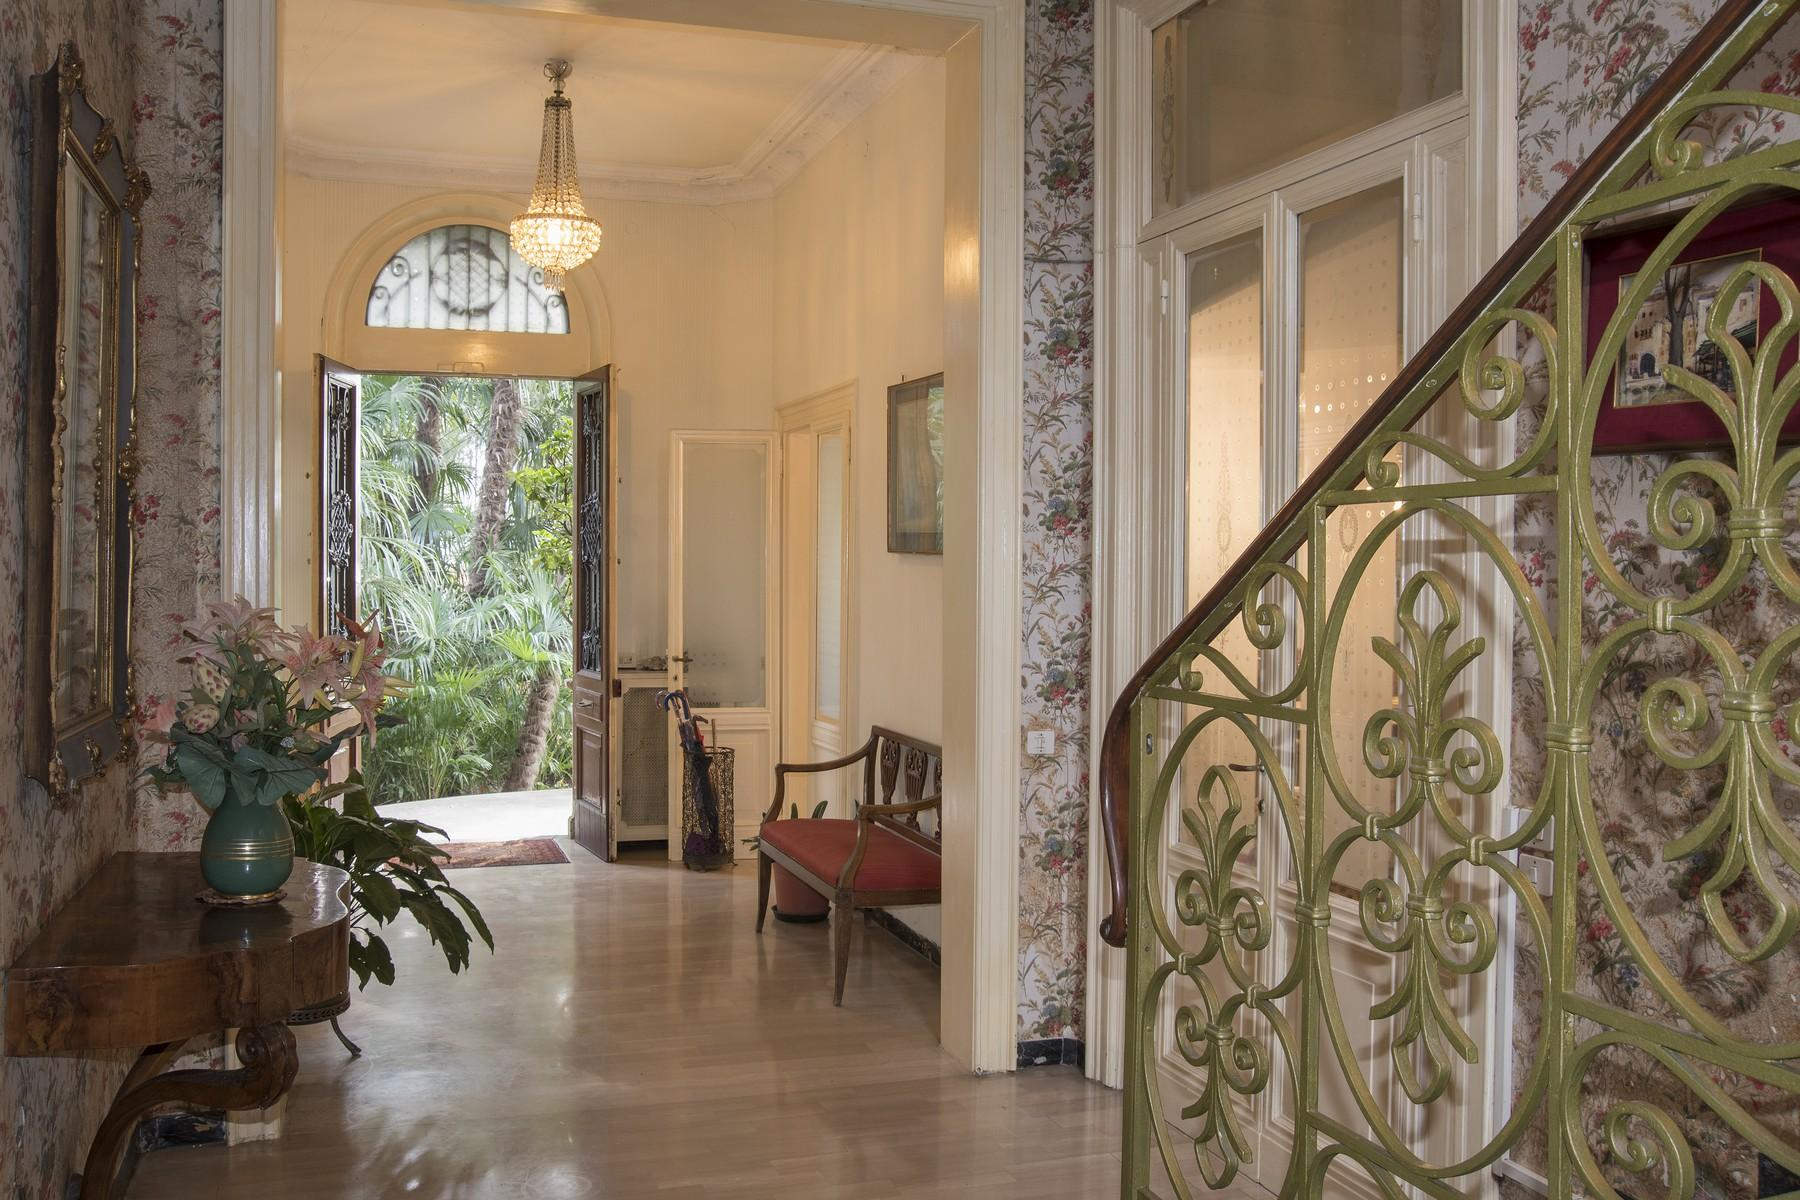 Wonderful Art Nouveau villa in the heart of Treviso - 7